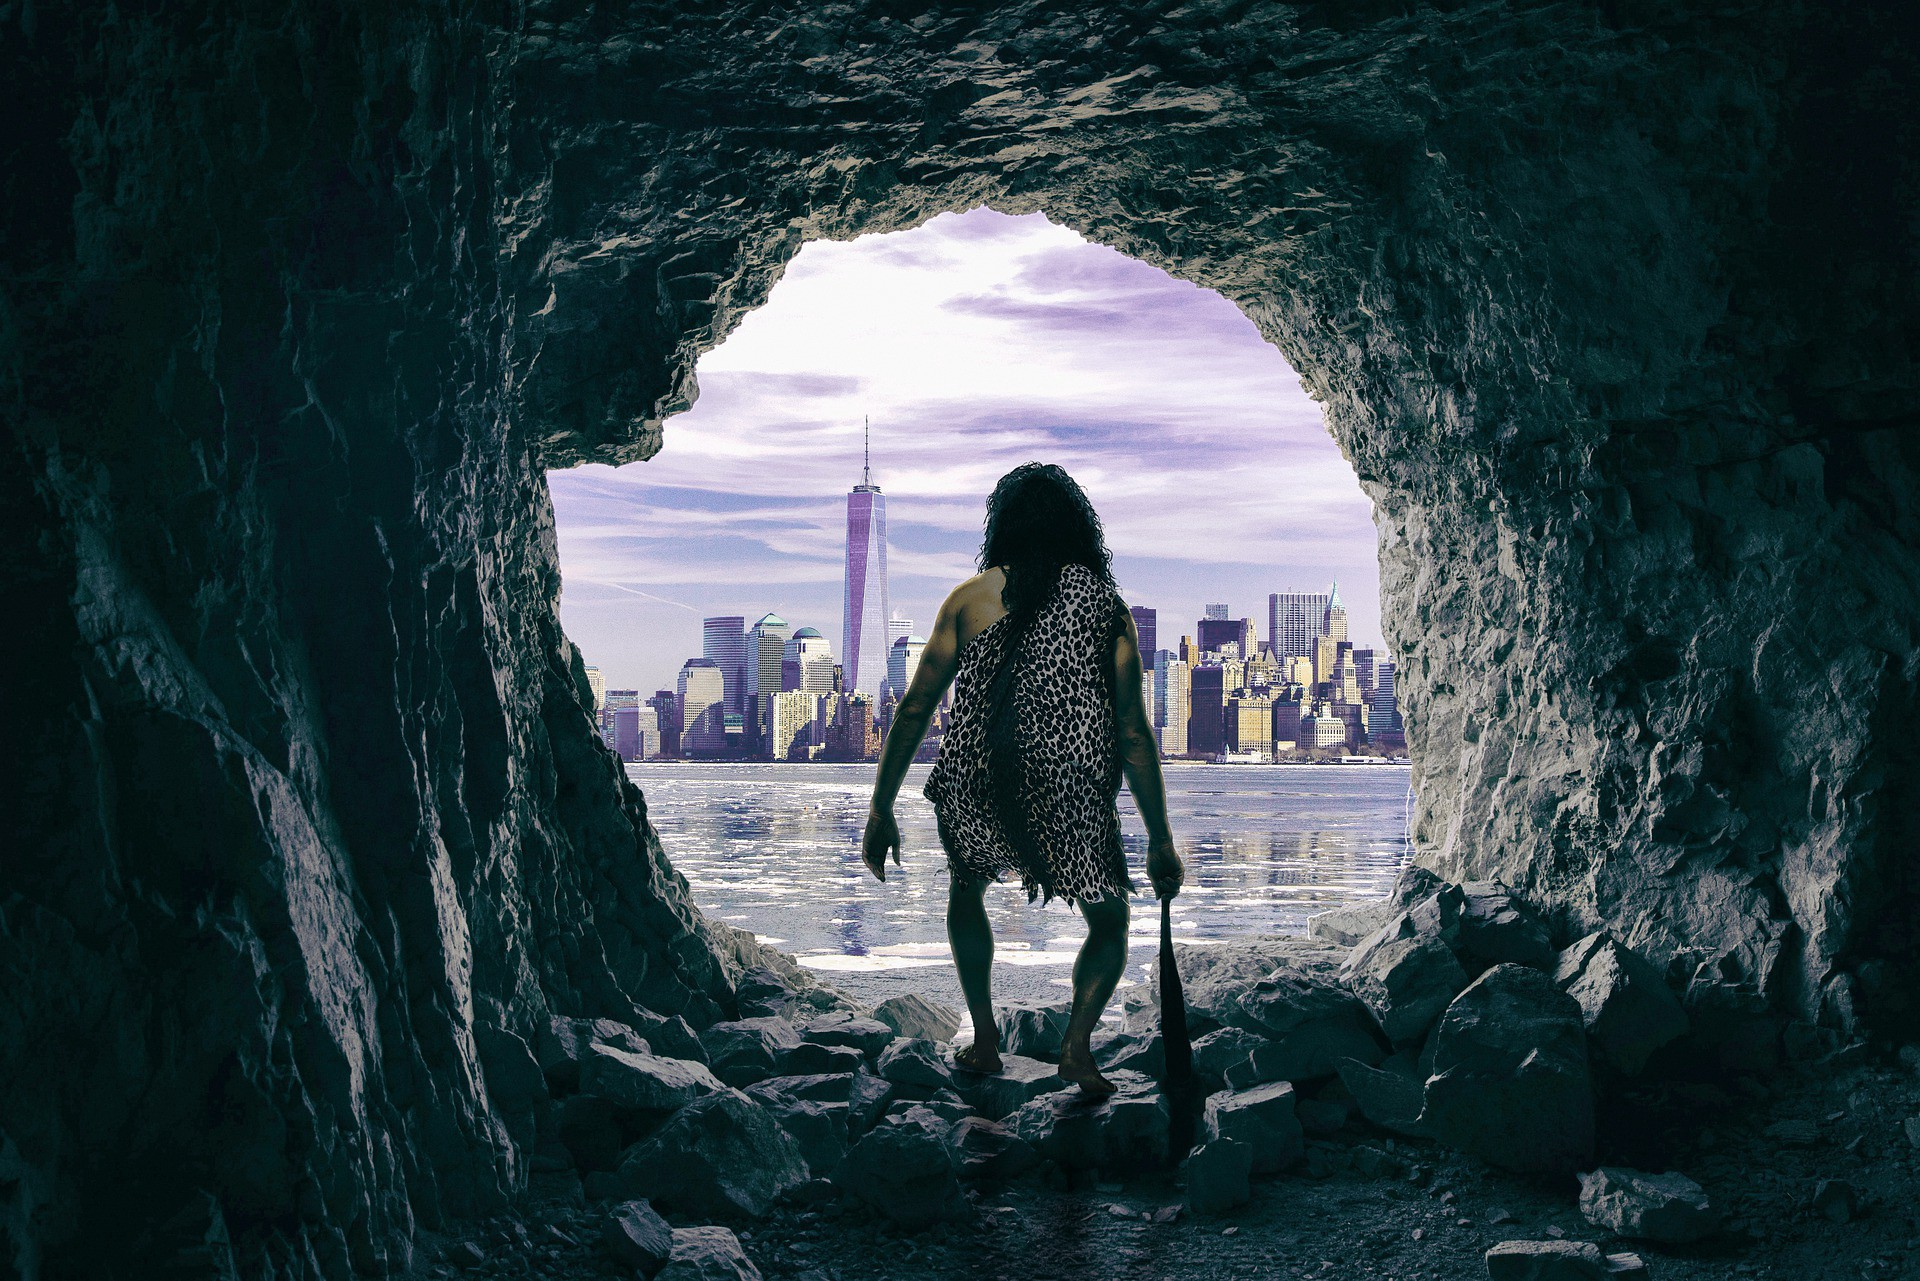 Cavewoman in a leopard skin with a club paused at the mouth of a cave, starting across a lake to a modern city.